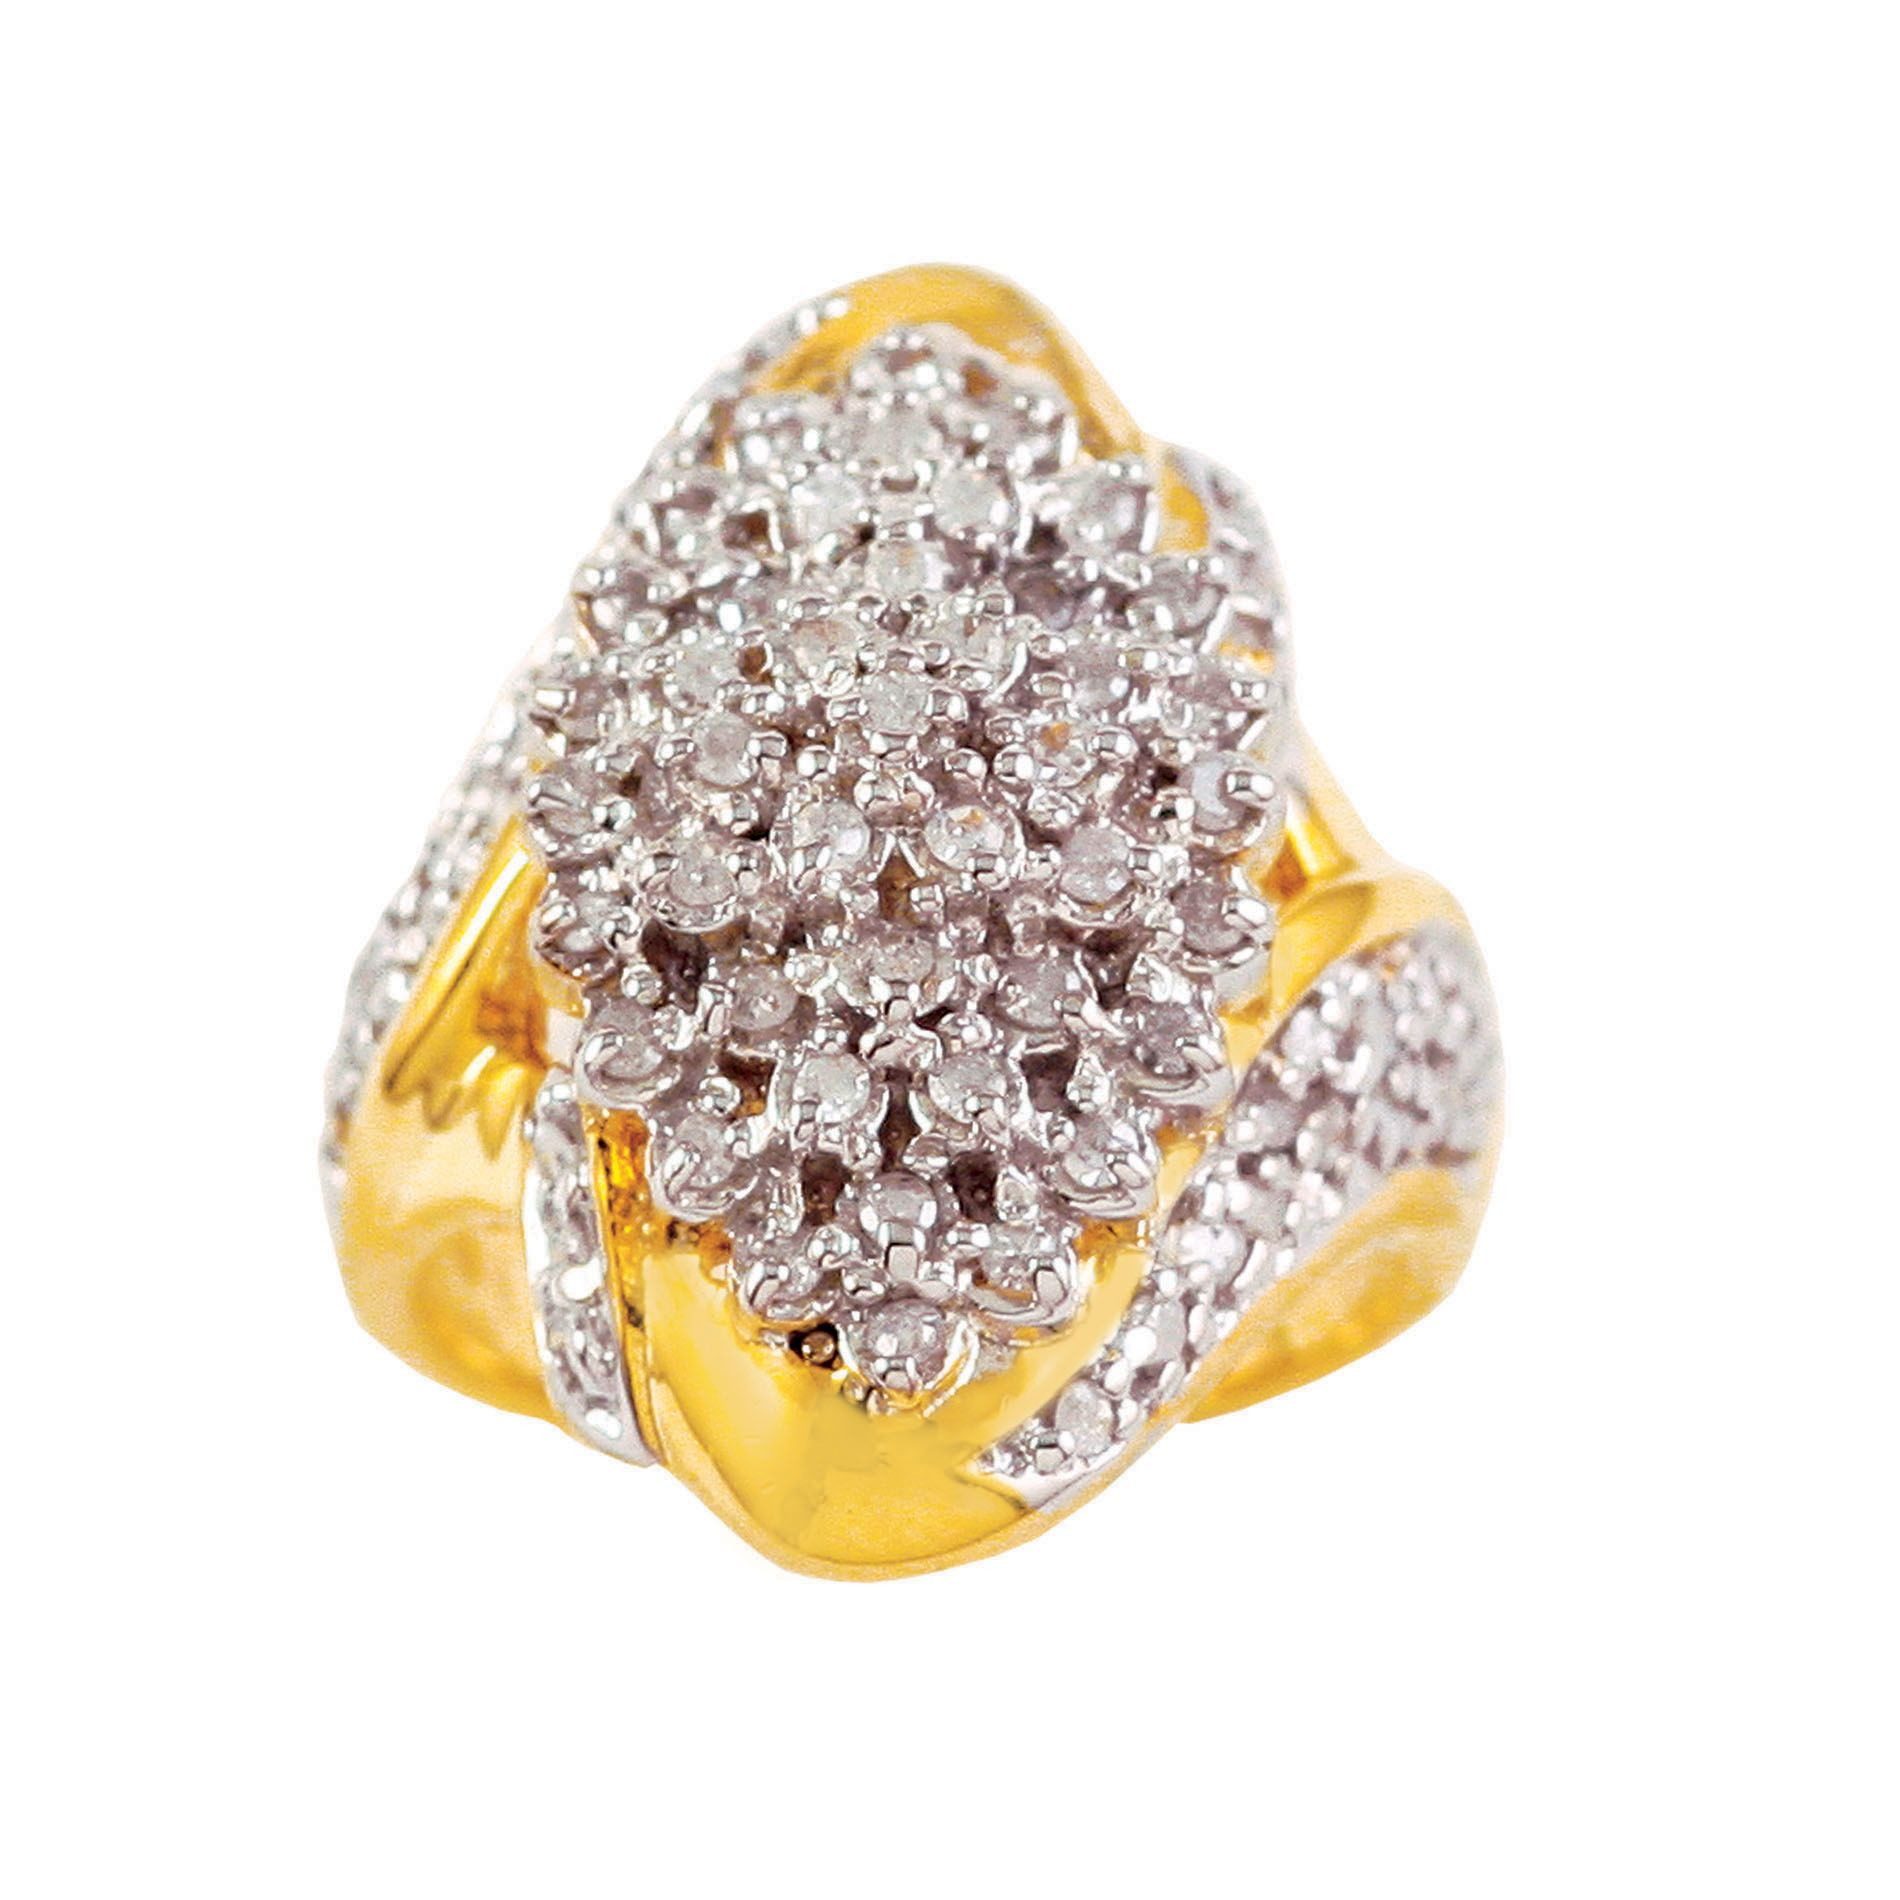 1 cttw Diamond Ring in 18K Gold over Sterling Silver